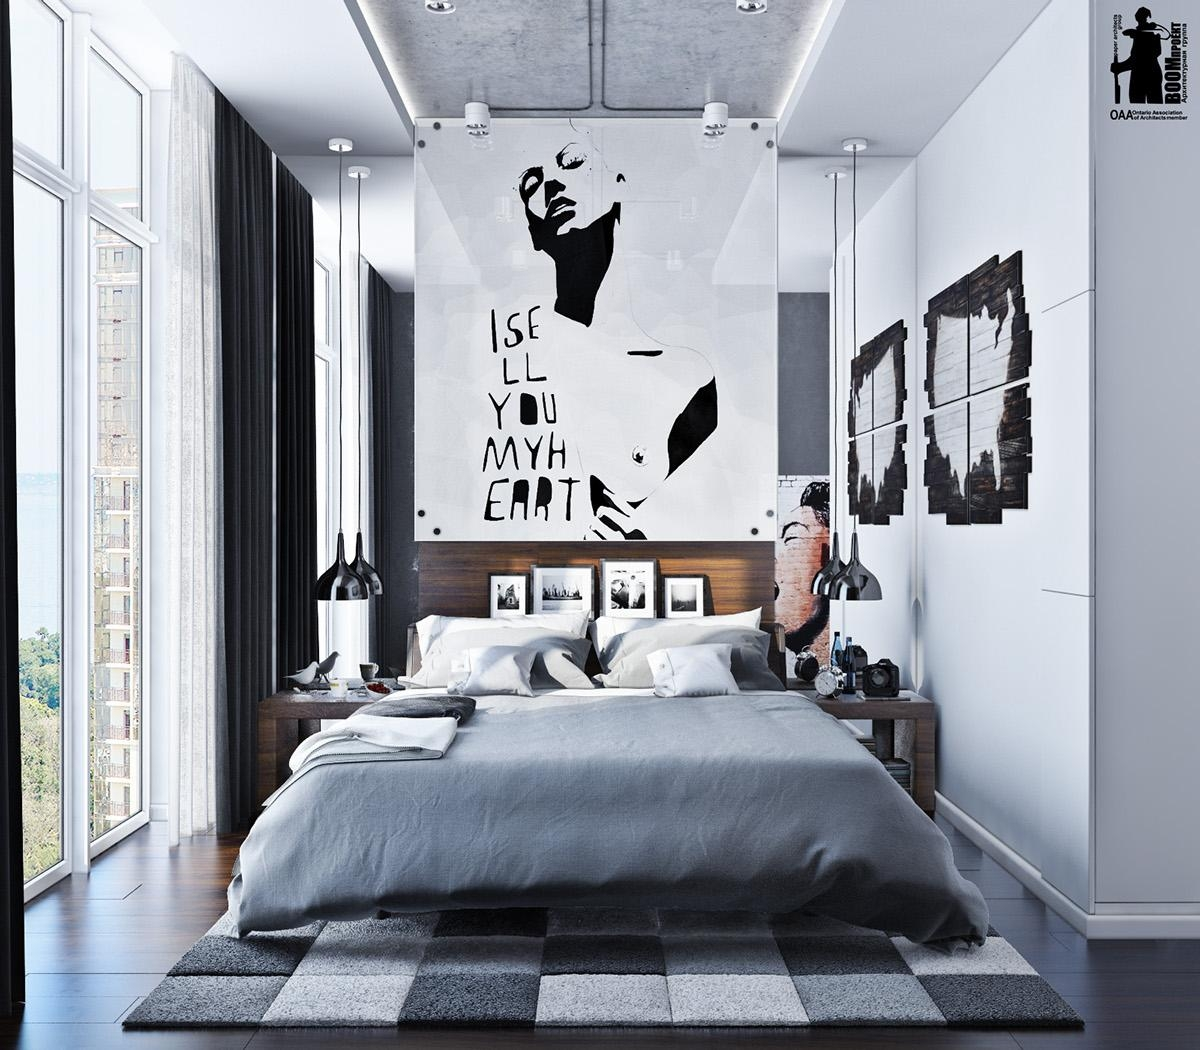 Modern Homes Bedrooms Designs Best Bedrooms Designs Ideas: 20 Collection Of Cool Wall Art For Guys